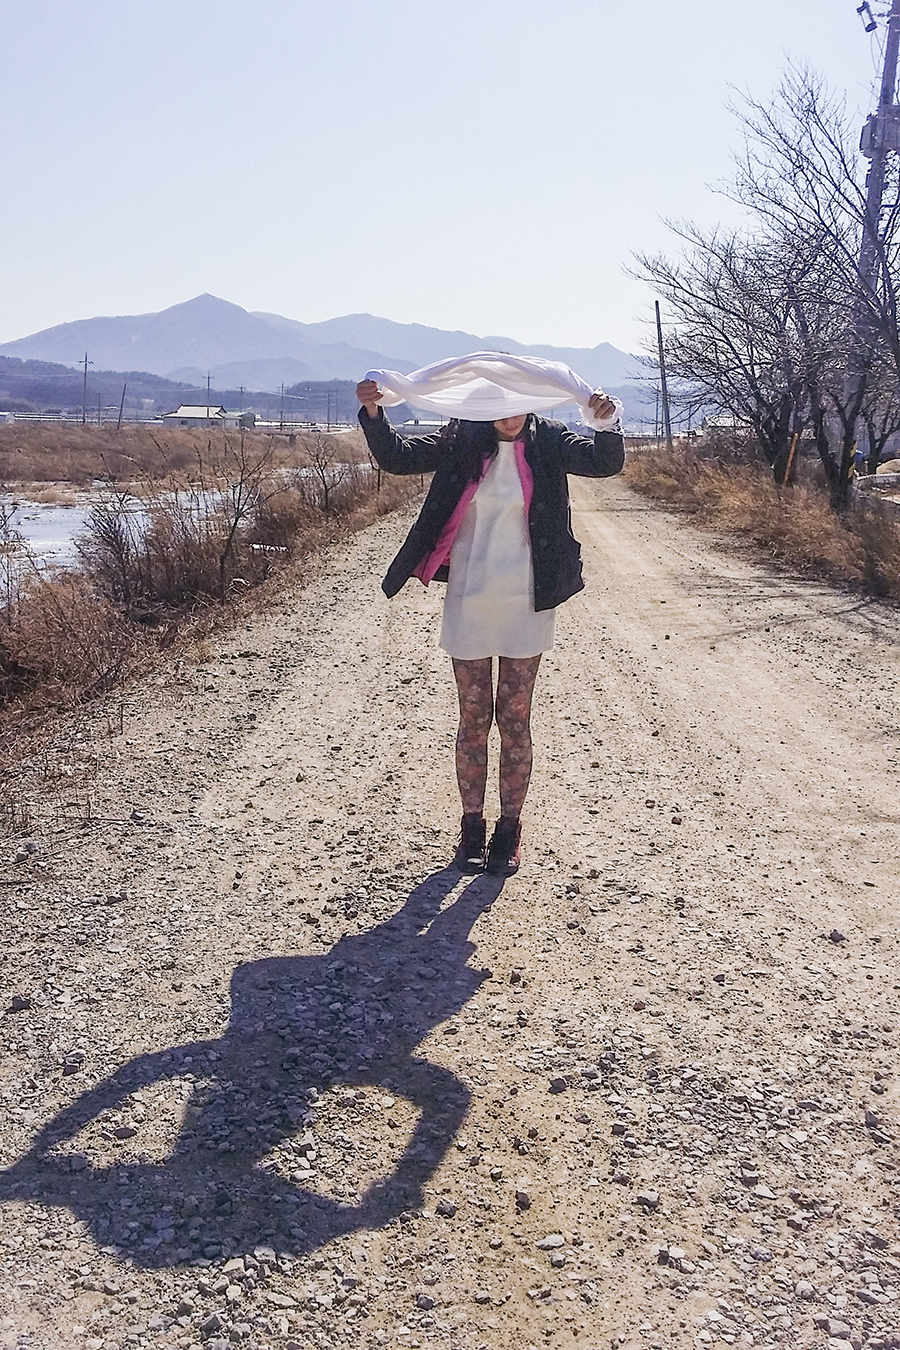 Outfit by the river in Sangju, South Korea.